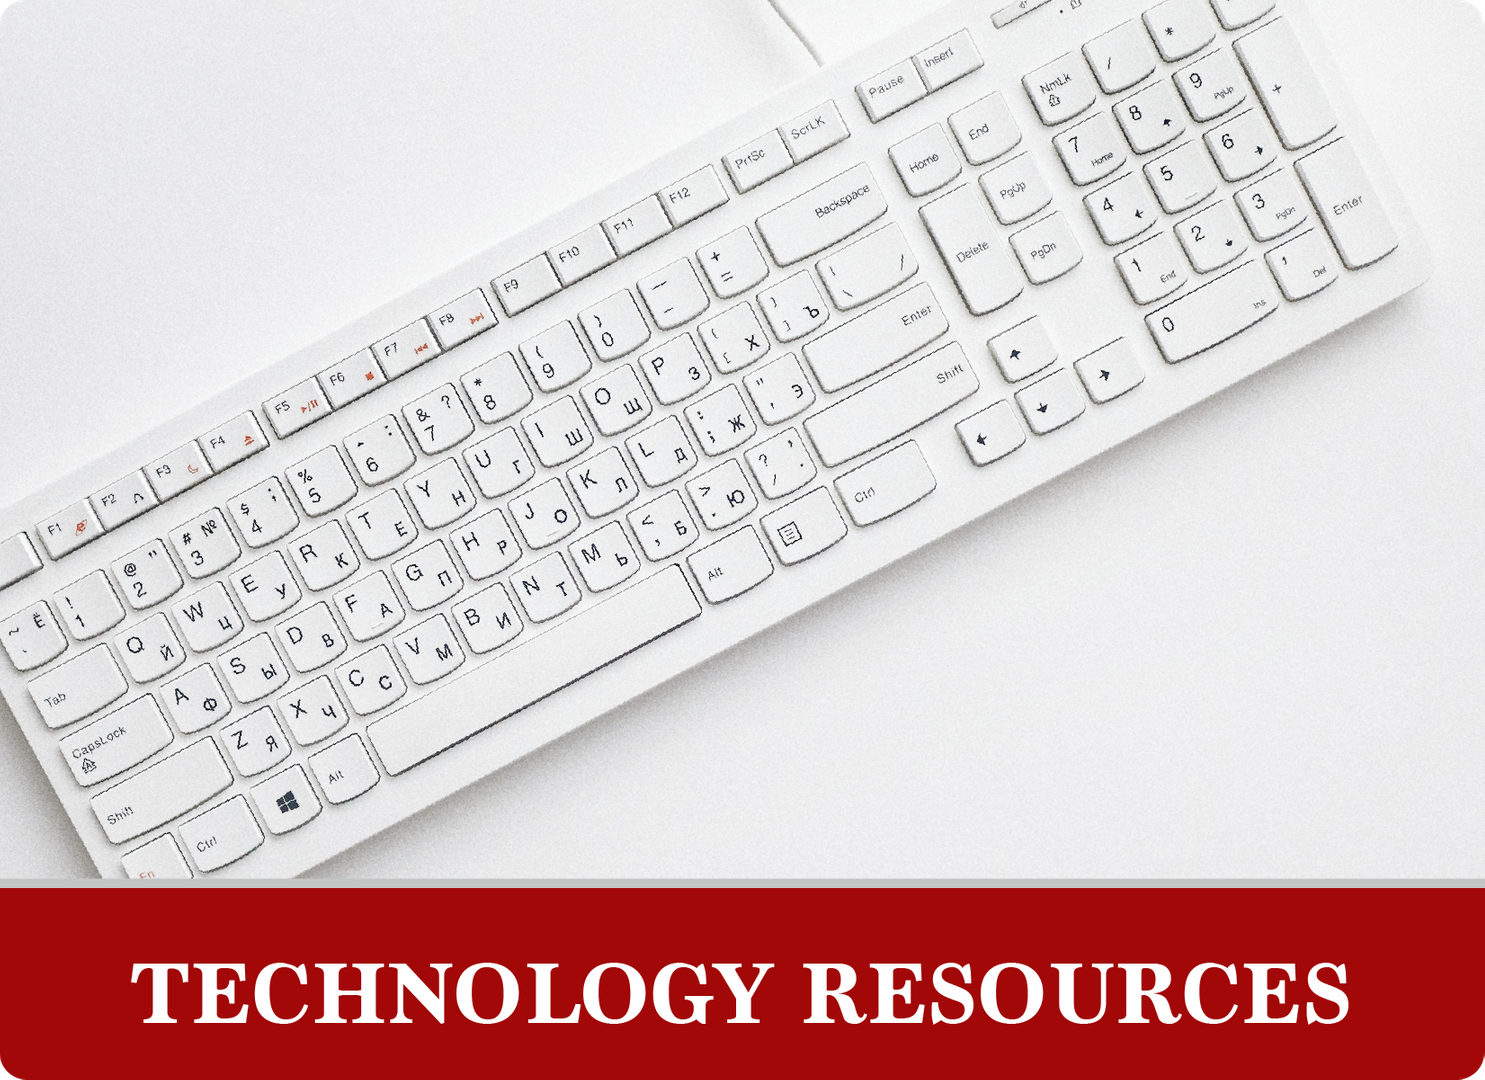 Technology Resources: Keyboard